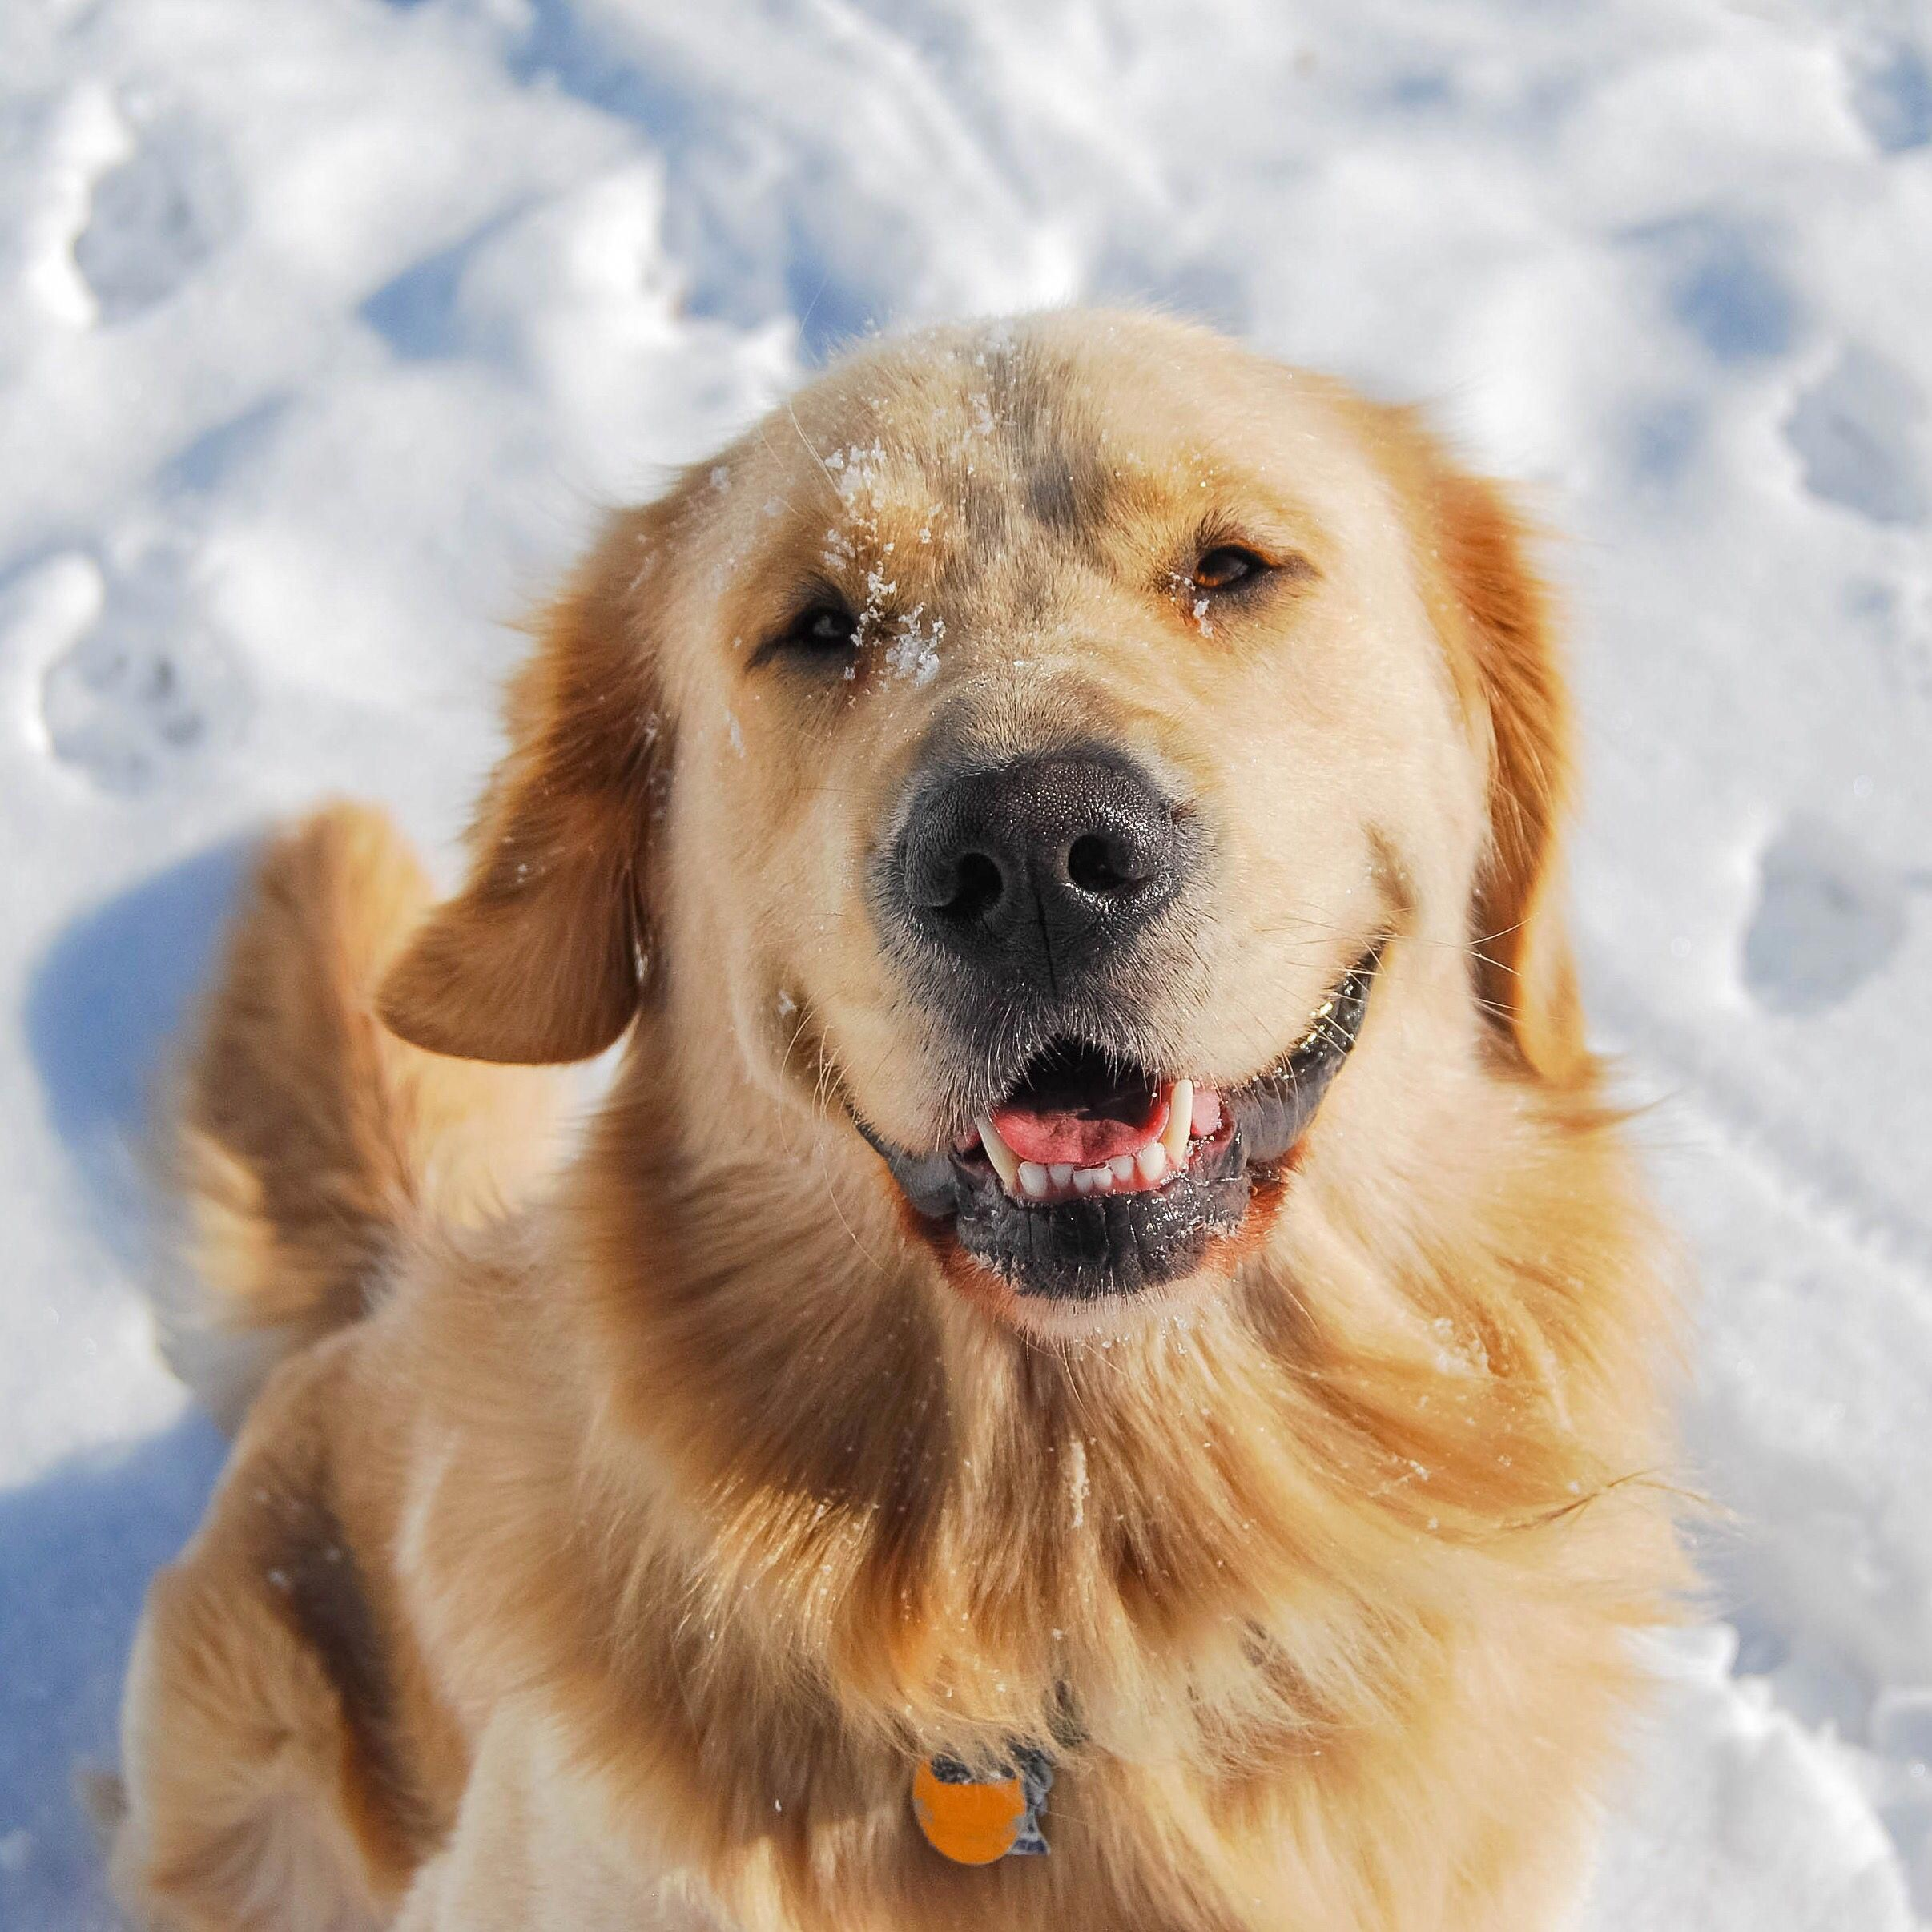 More About The Devoted Golden Retriever Puppy Personality